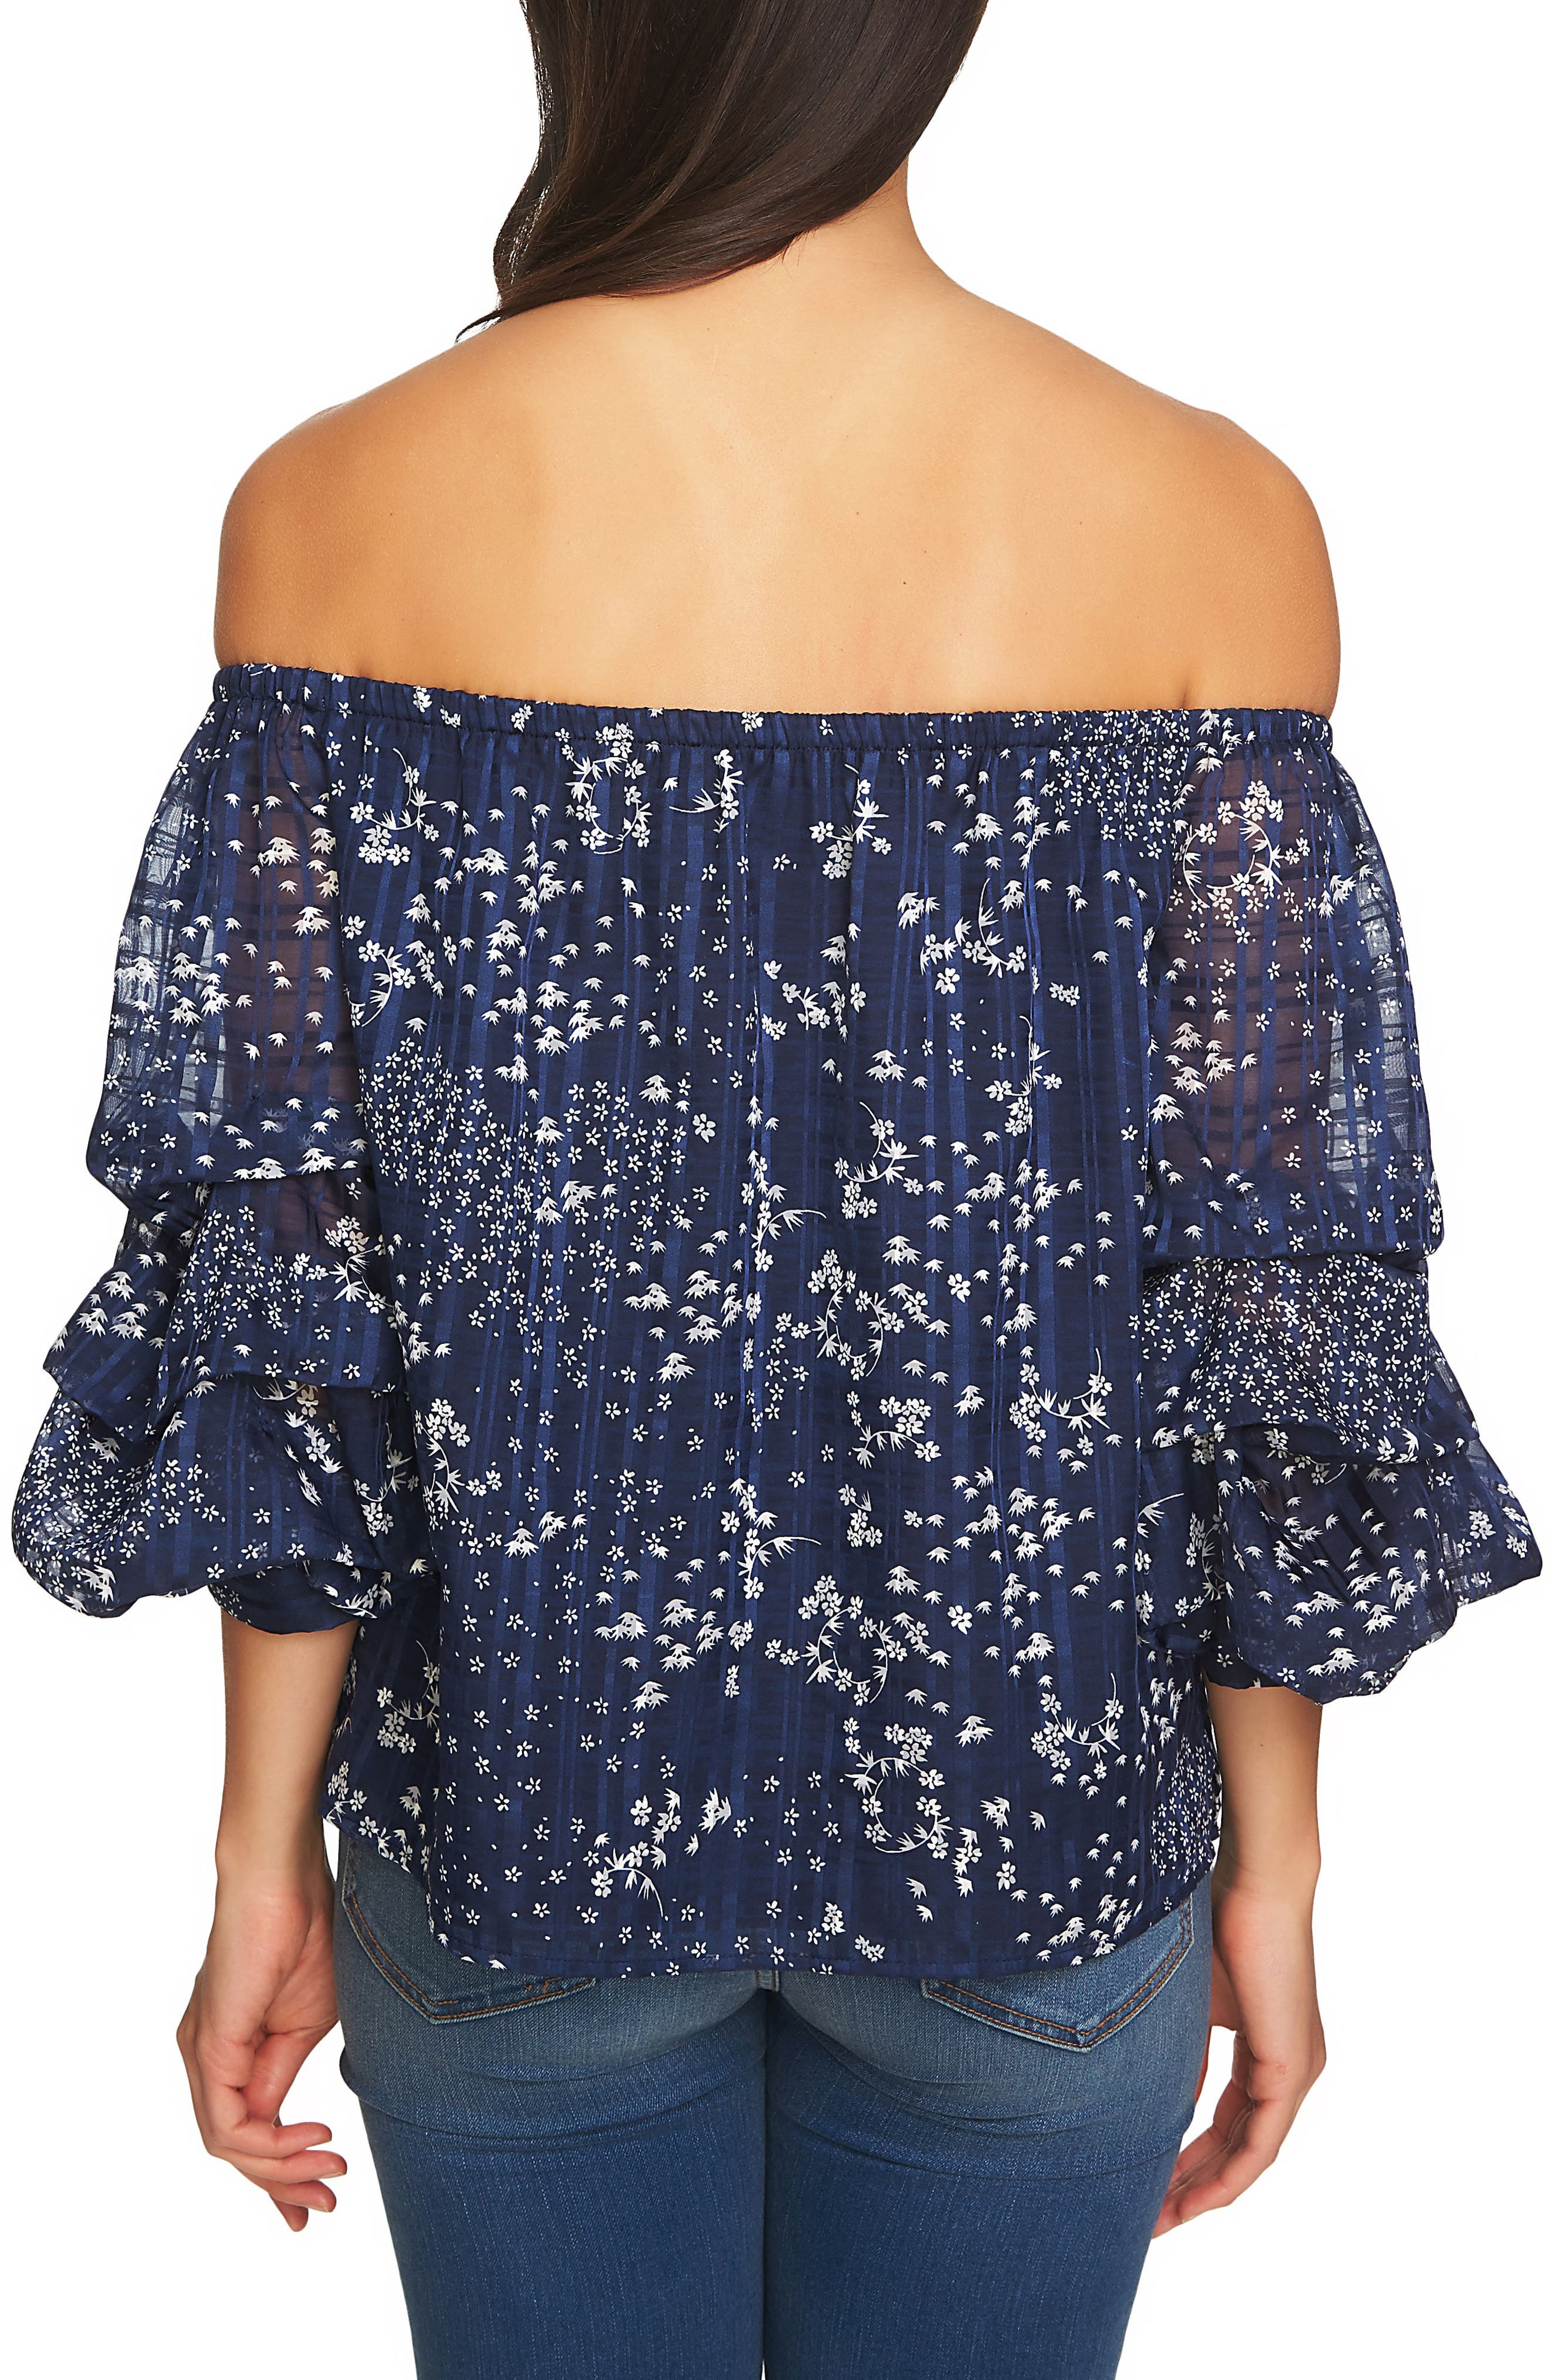 Off the Shoulder Top,                             Alternate thumbnail 2, color,                             Navy Yard